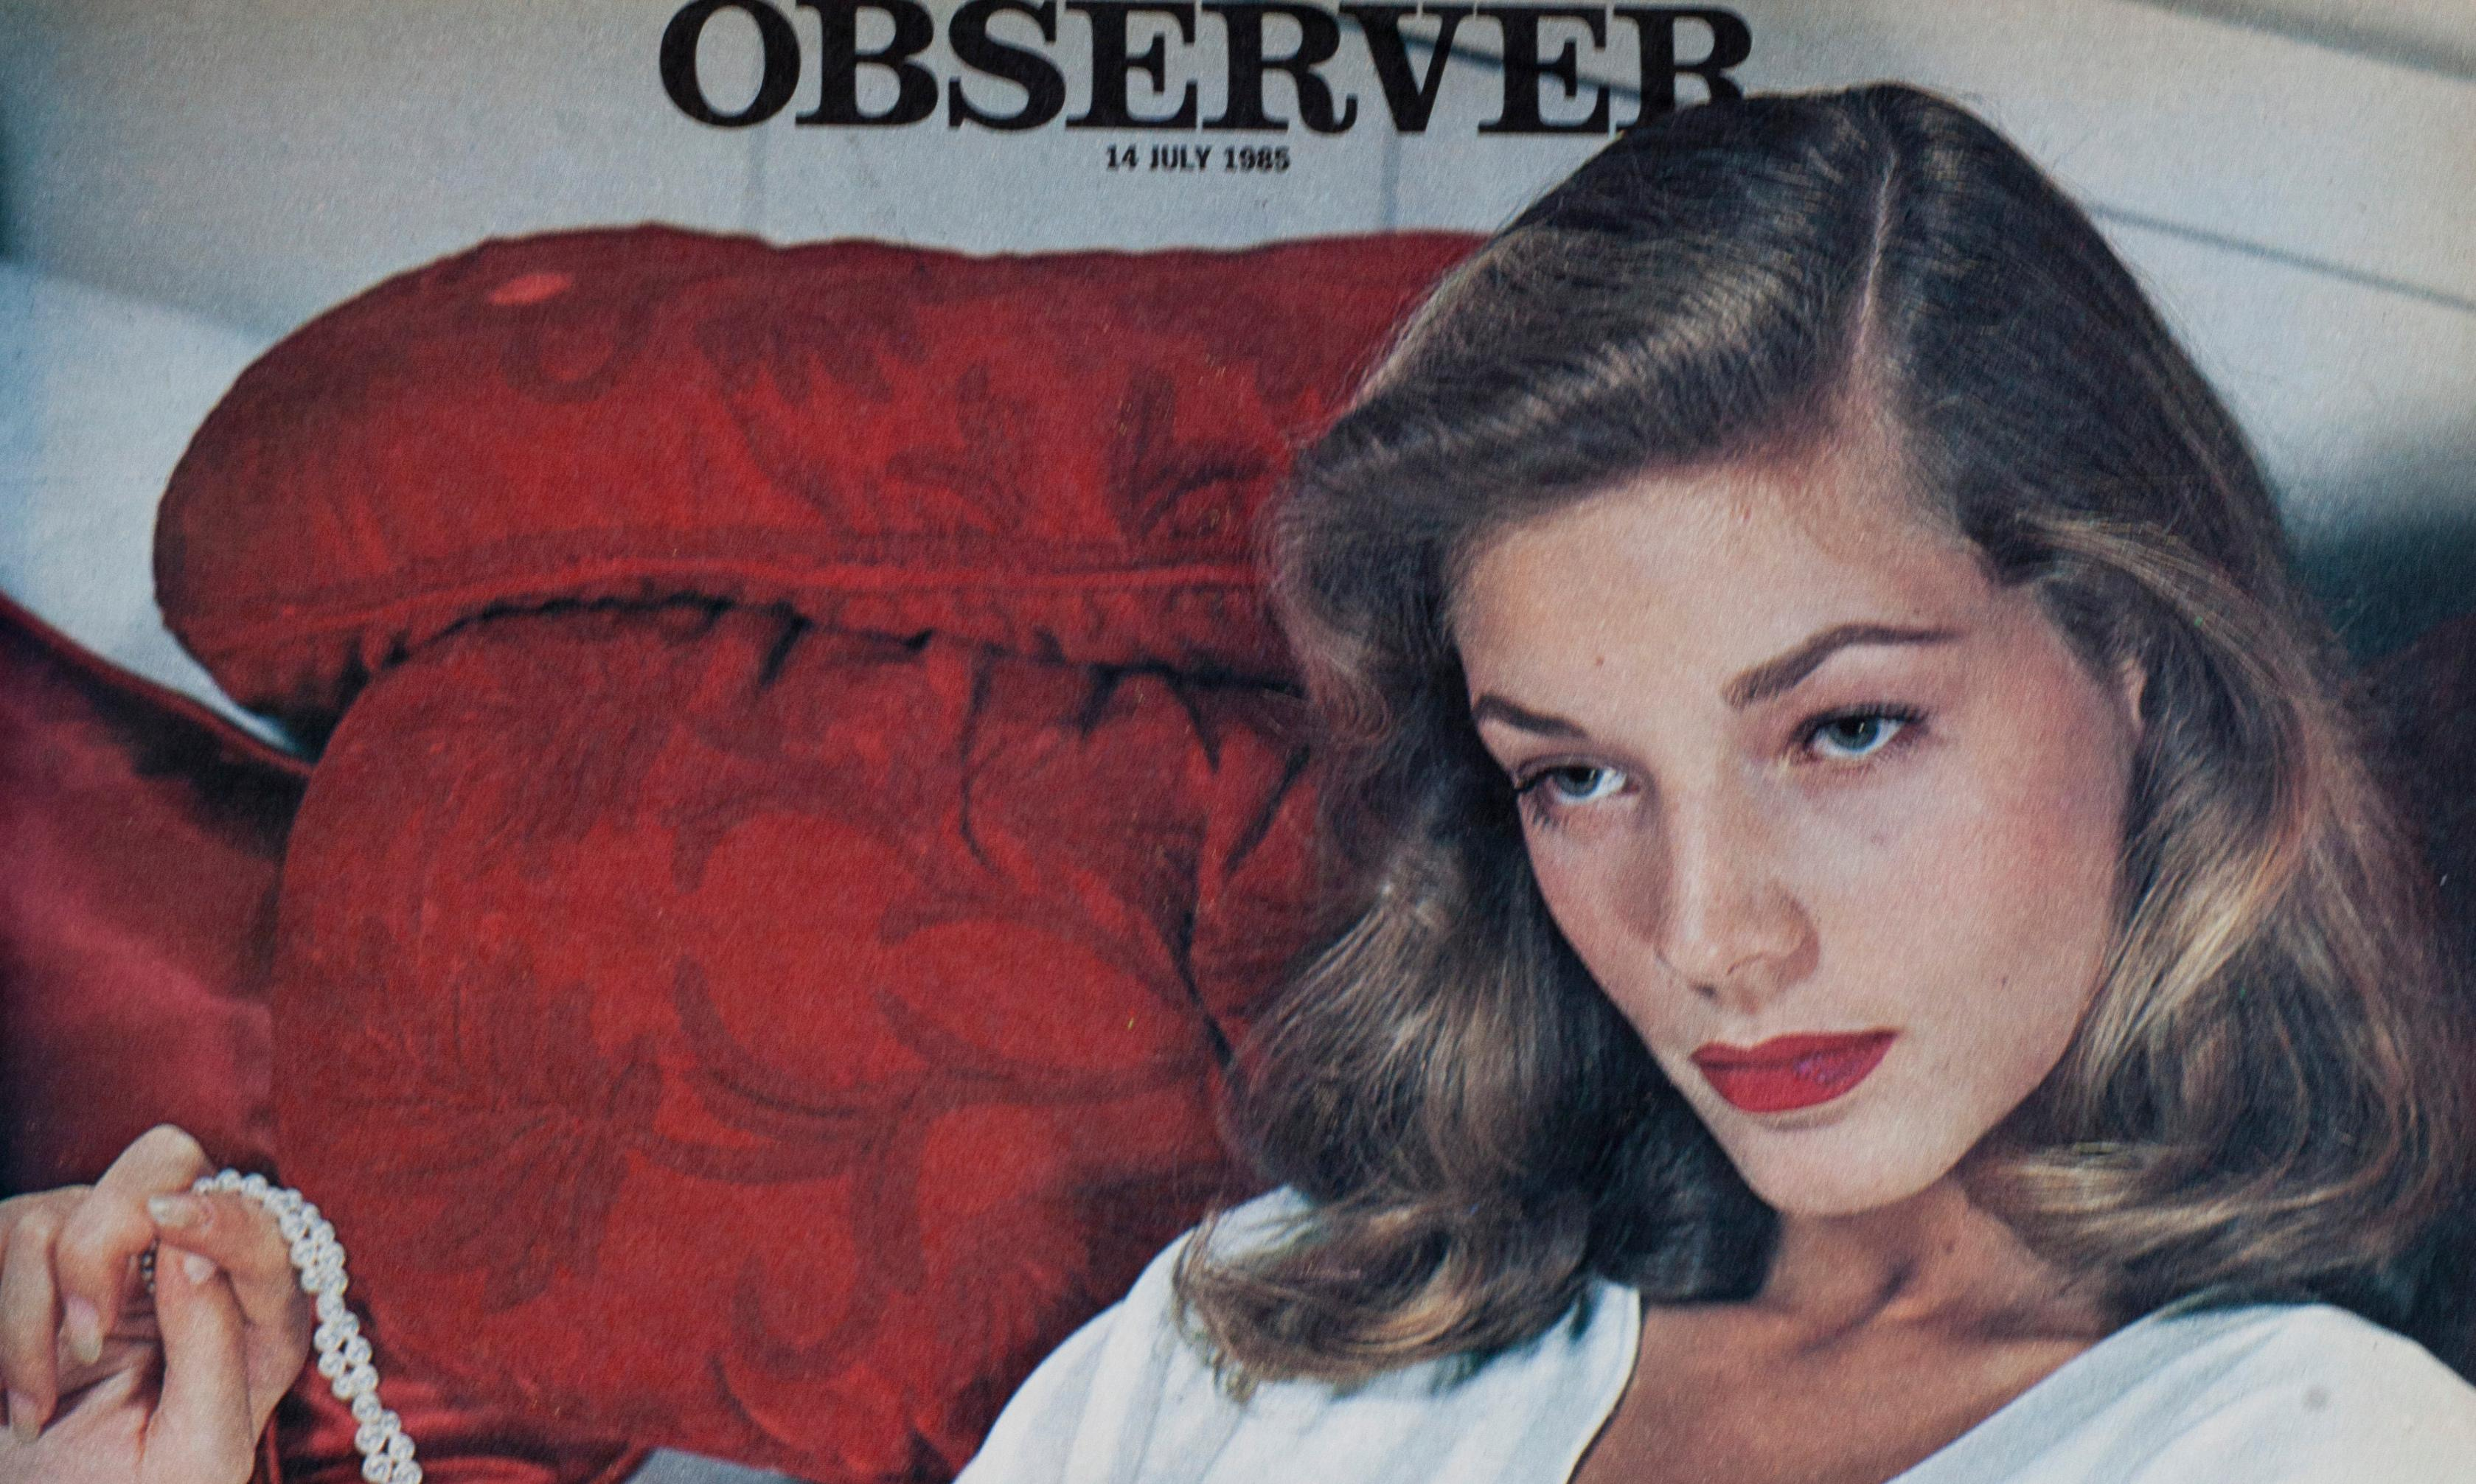 From the archive: When Melvyn Bragg met Lauren Bacall